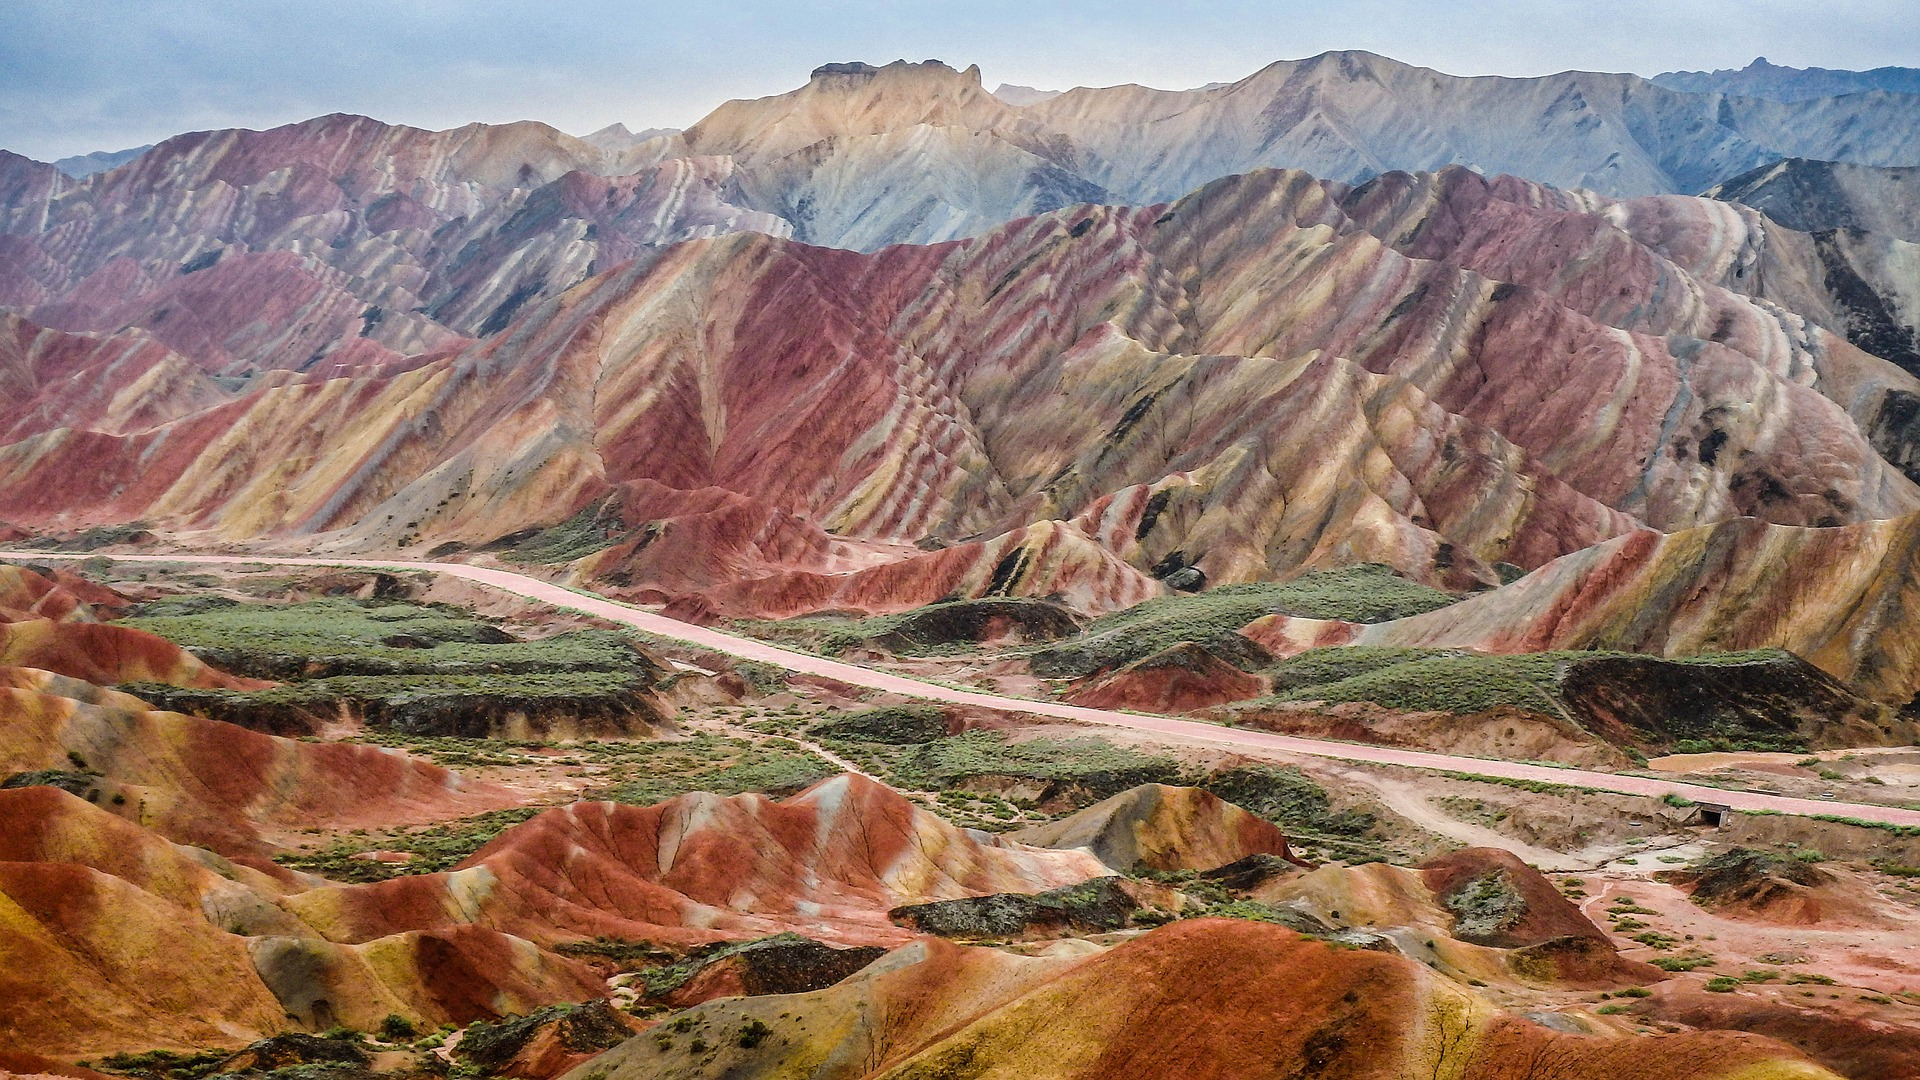 Zhangye Danxia Landform In China